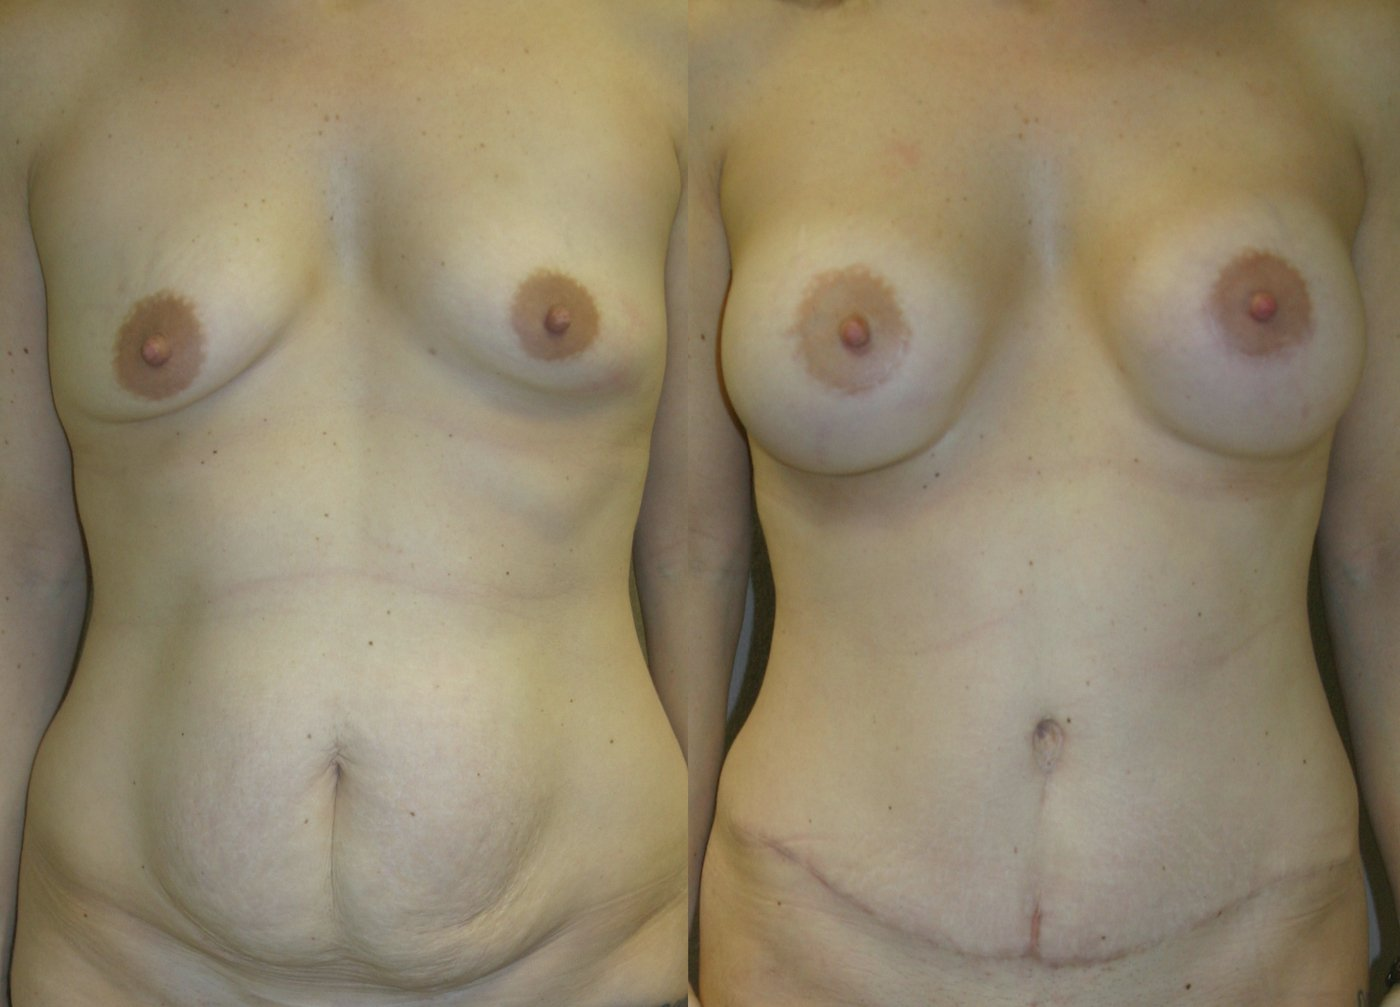 36-year-old Mommy Makeover, Breast Augmentation and Tummy Tuck 6 months after surgery, front view